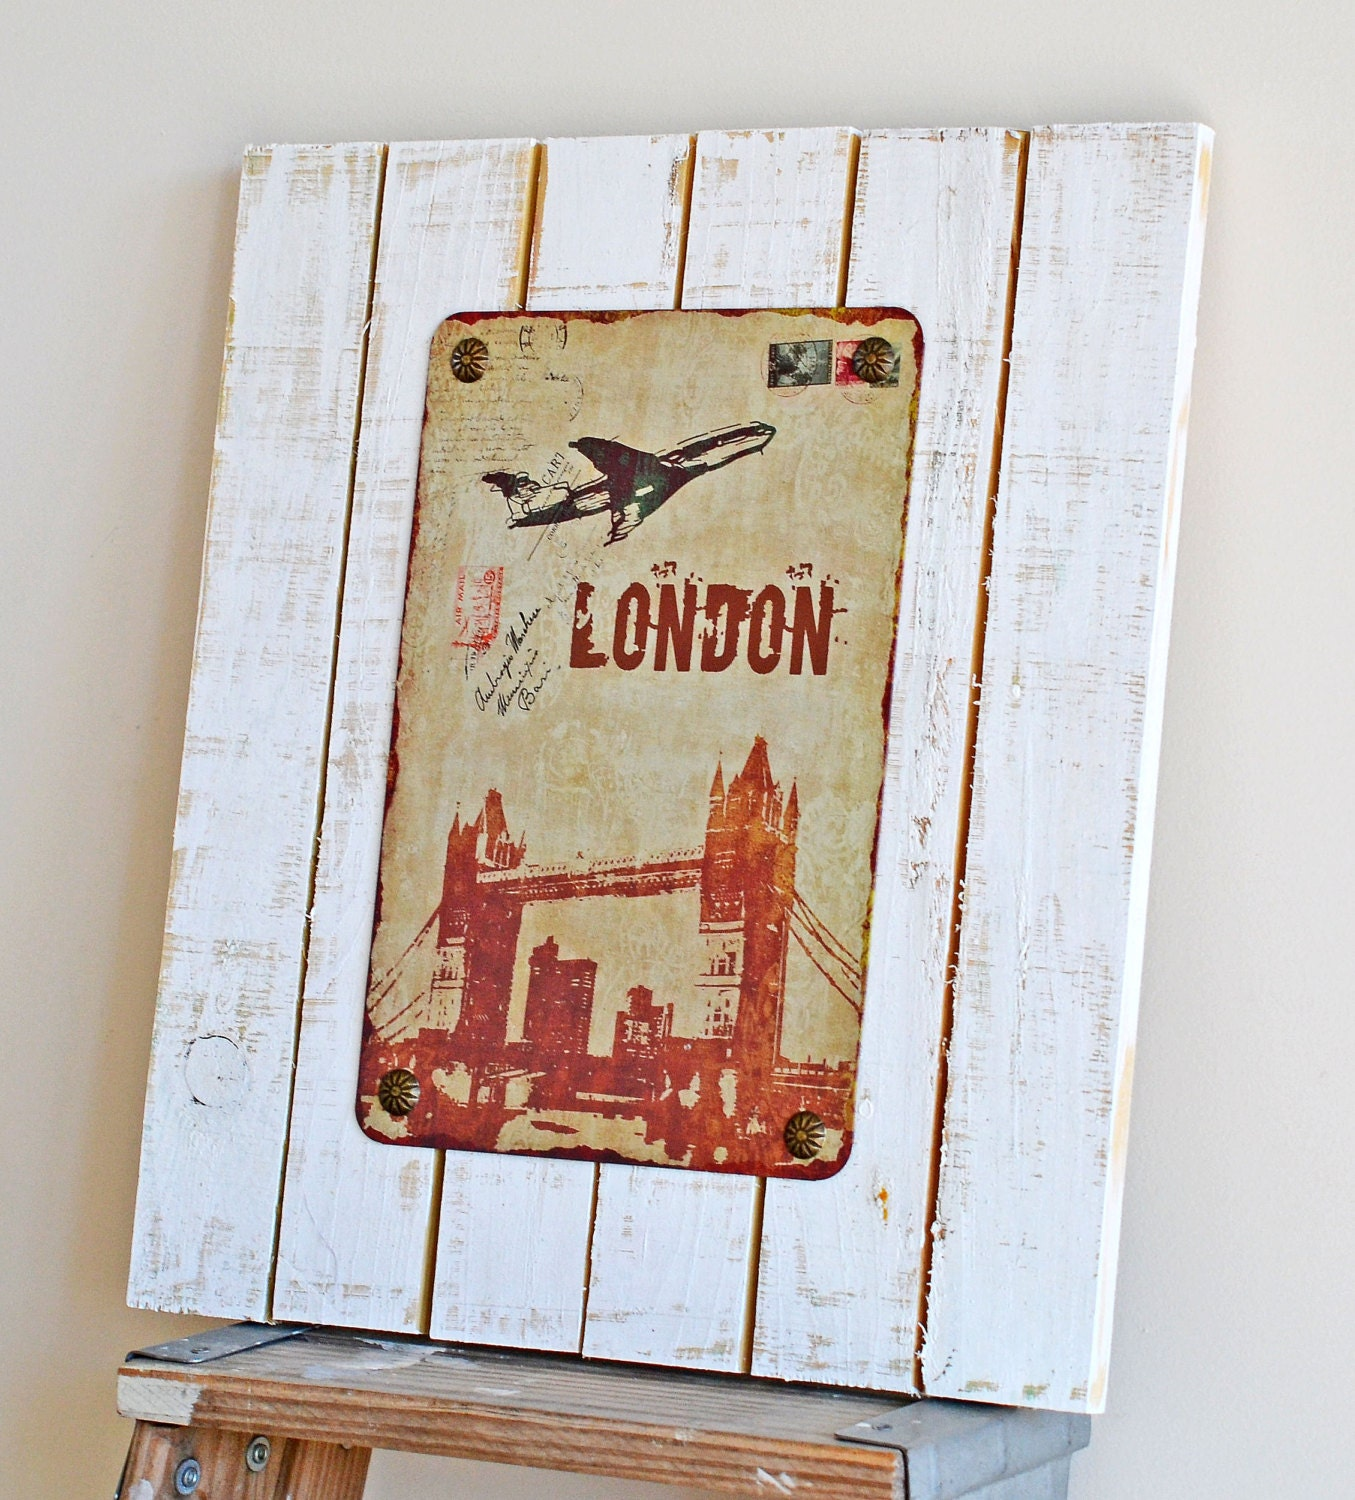 London wall art tourist decor travel decor uk art by toolbox for London wall art